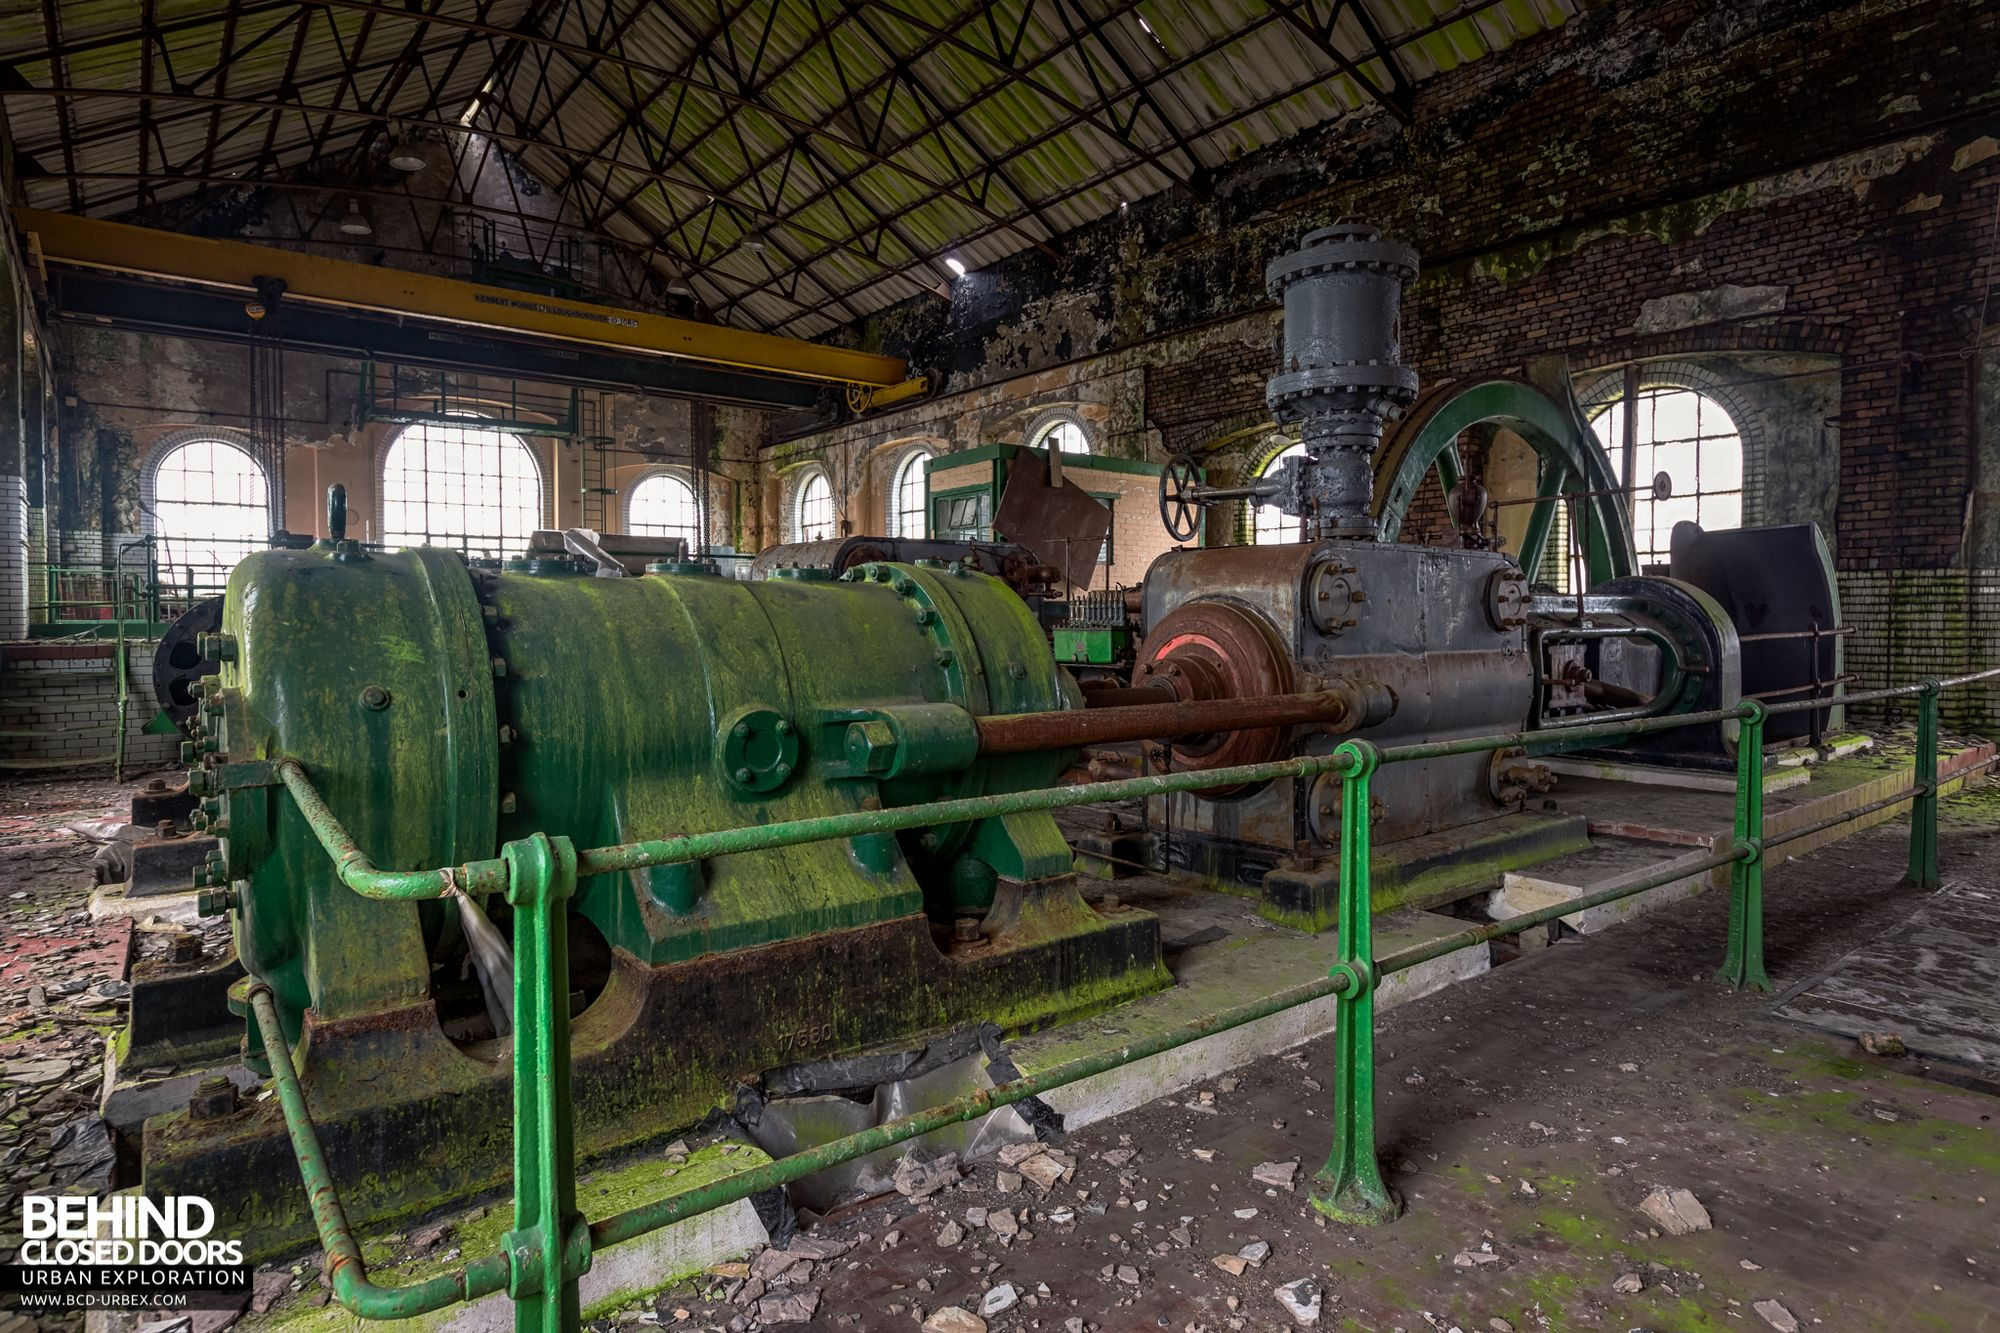 How long did chatterley whitfield mine for bitcoins football teams to bet on